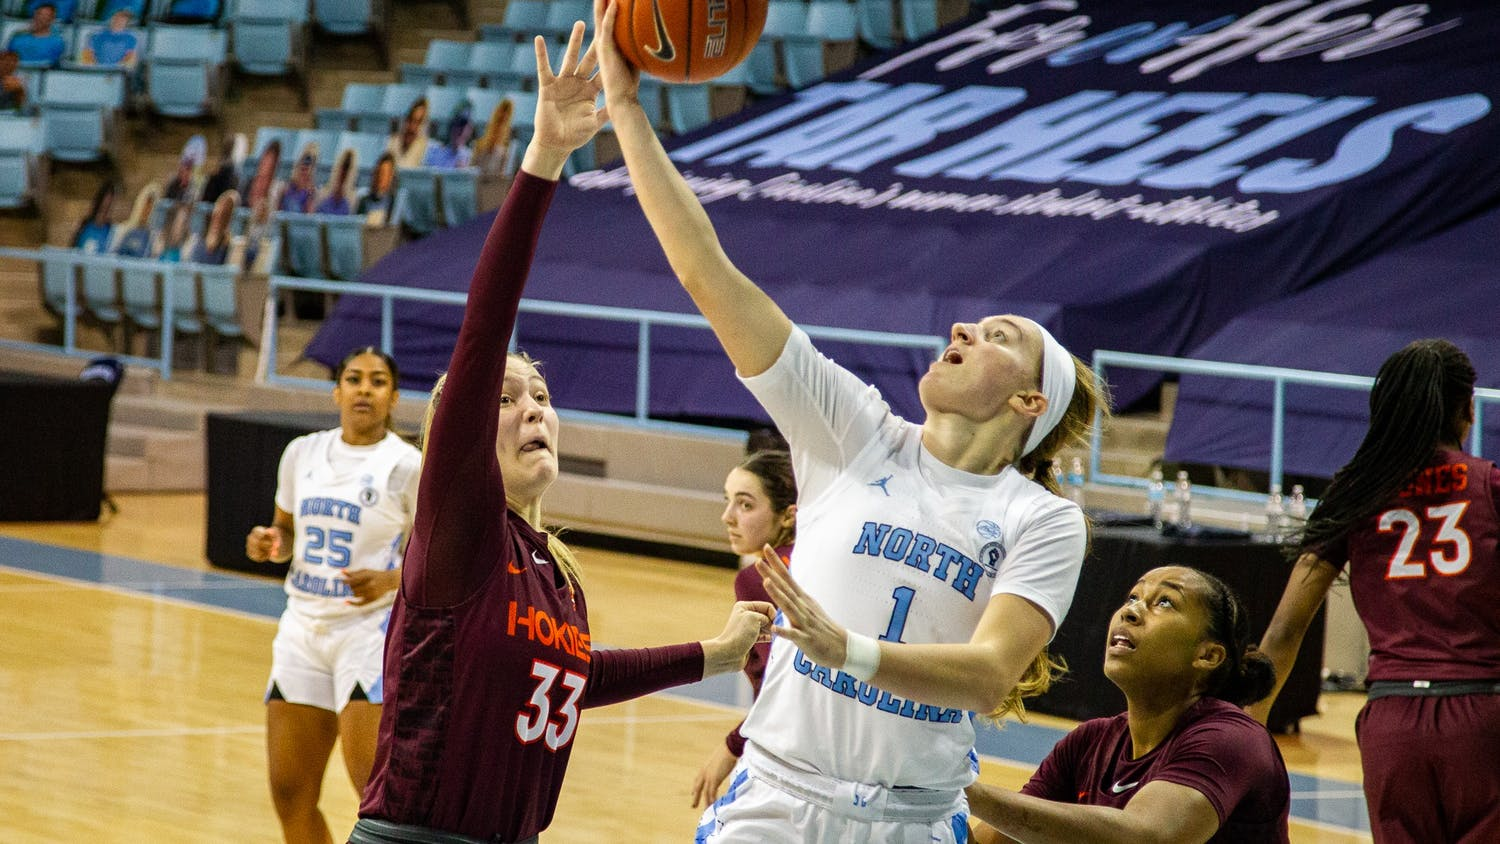 UNC freshman guard Alyssa Utsby (1) does a layup in Carmichael Arena on Jan. 14, 2021 in Chapel Hill, N.C. The Tar Heels lost to the Hokies 66-54.